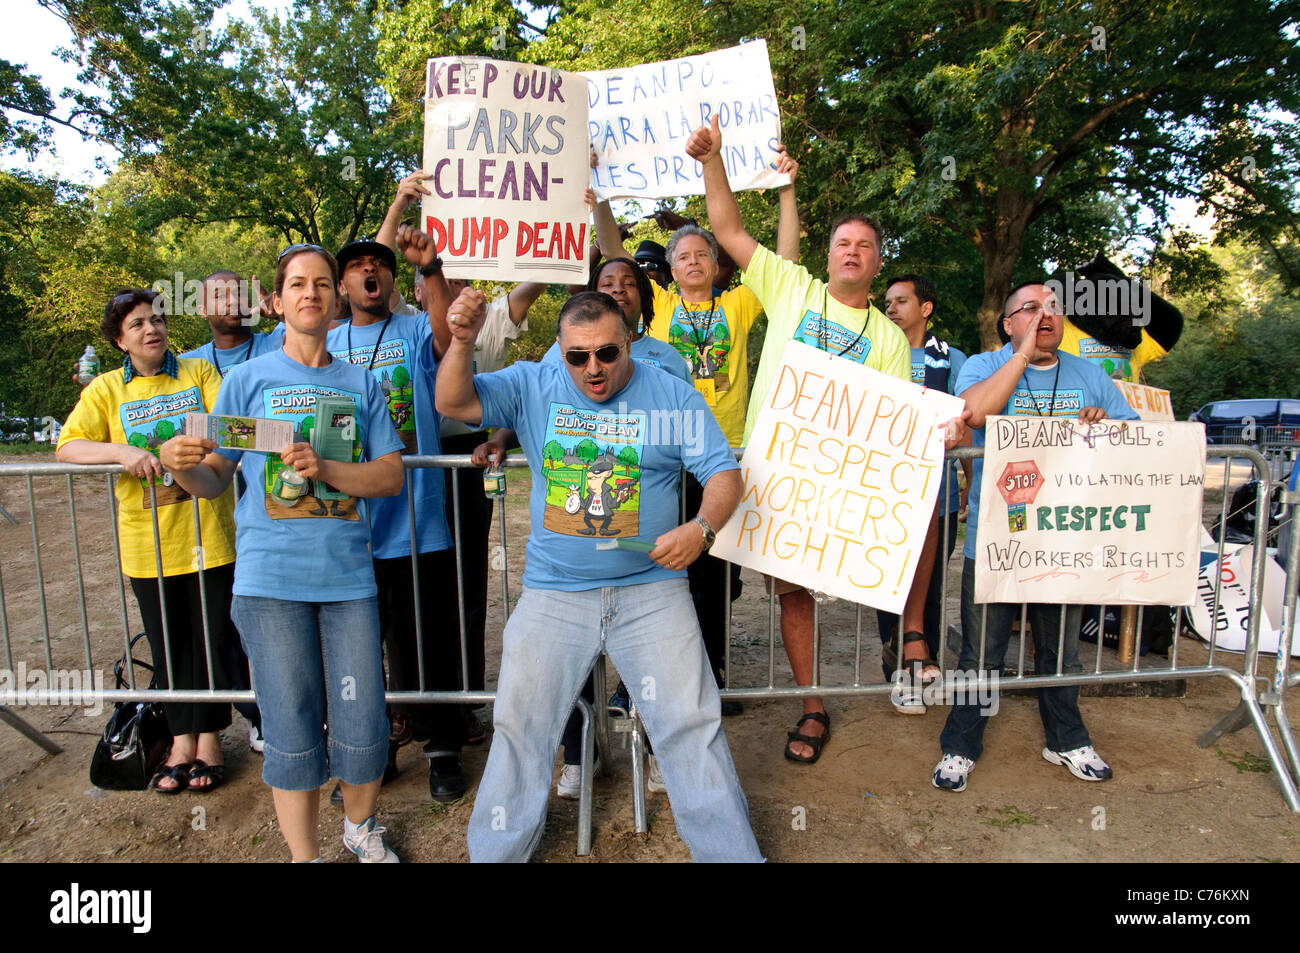 Central Park Boat House workers rallying accusing the restaurant's operator Dean Poll for running a 'sweatshop' - Stock Image